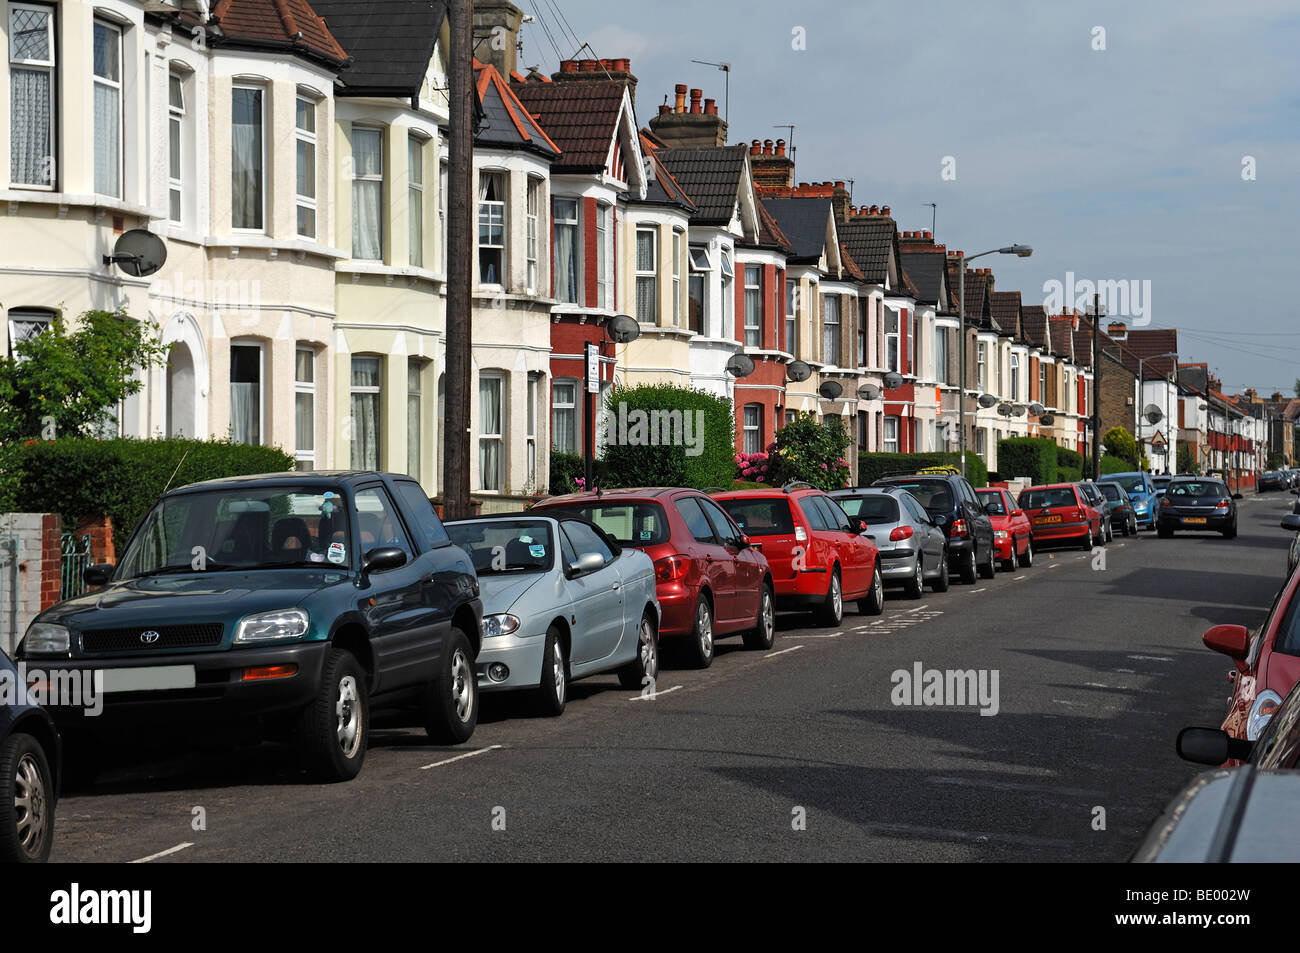 Typical English terraced houses, Undine Street, Tooting Broadway, London, England, Europe Stock Photo